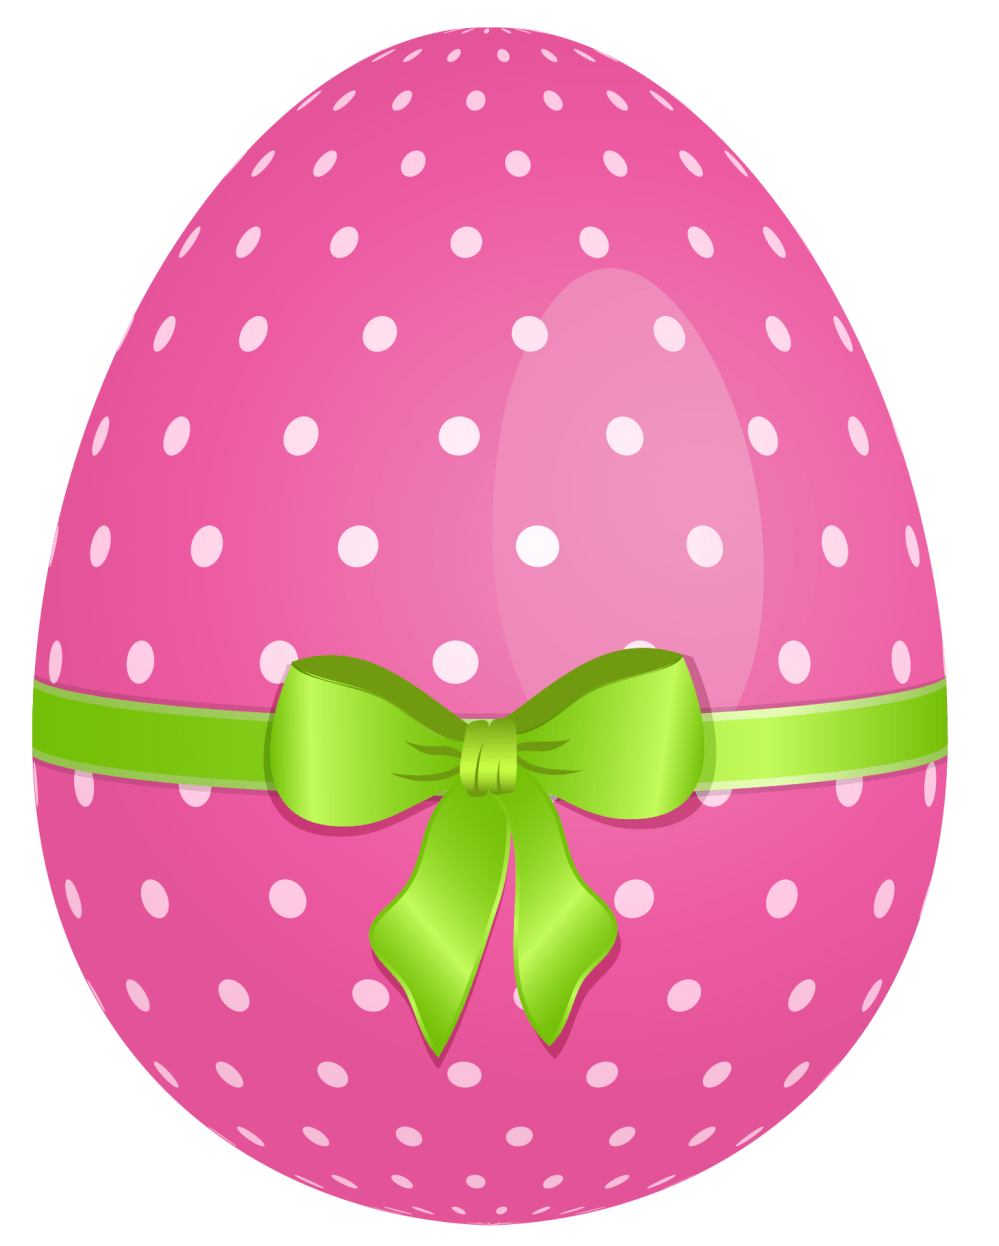 medium resolution of easter clipart image 2631